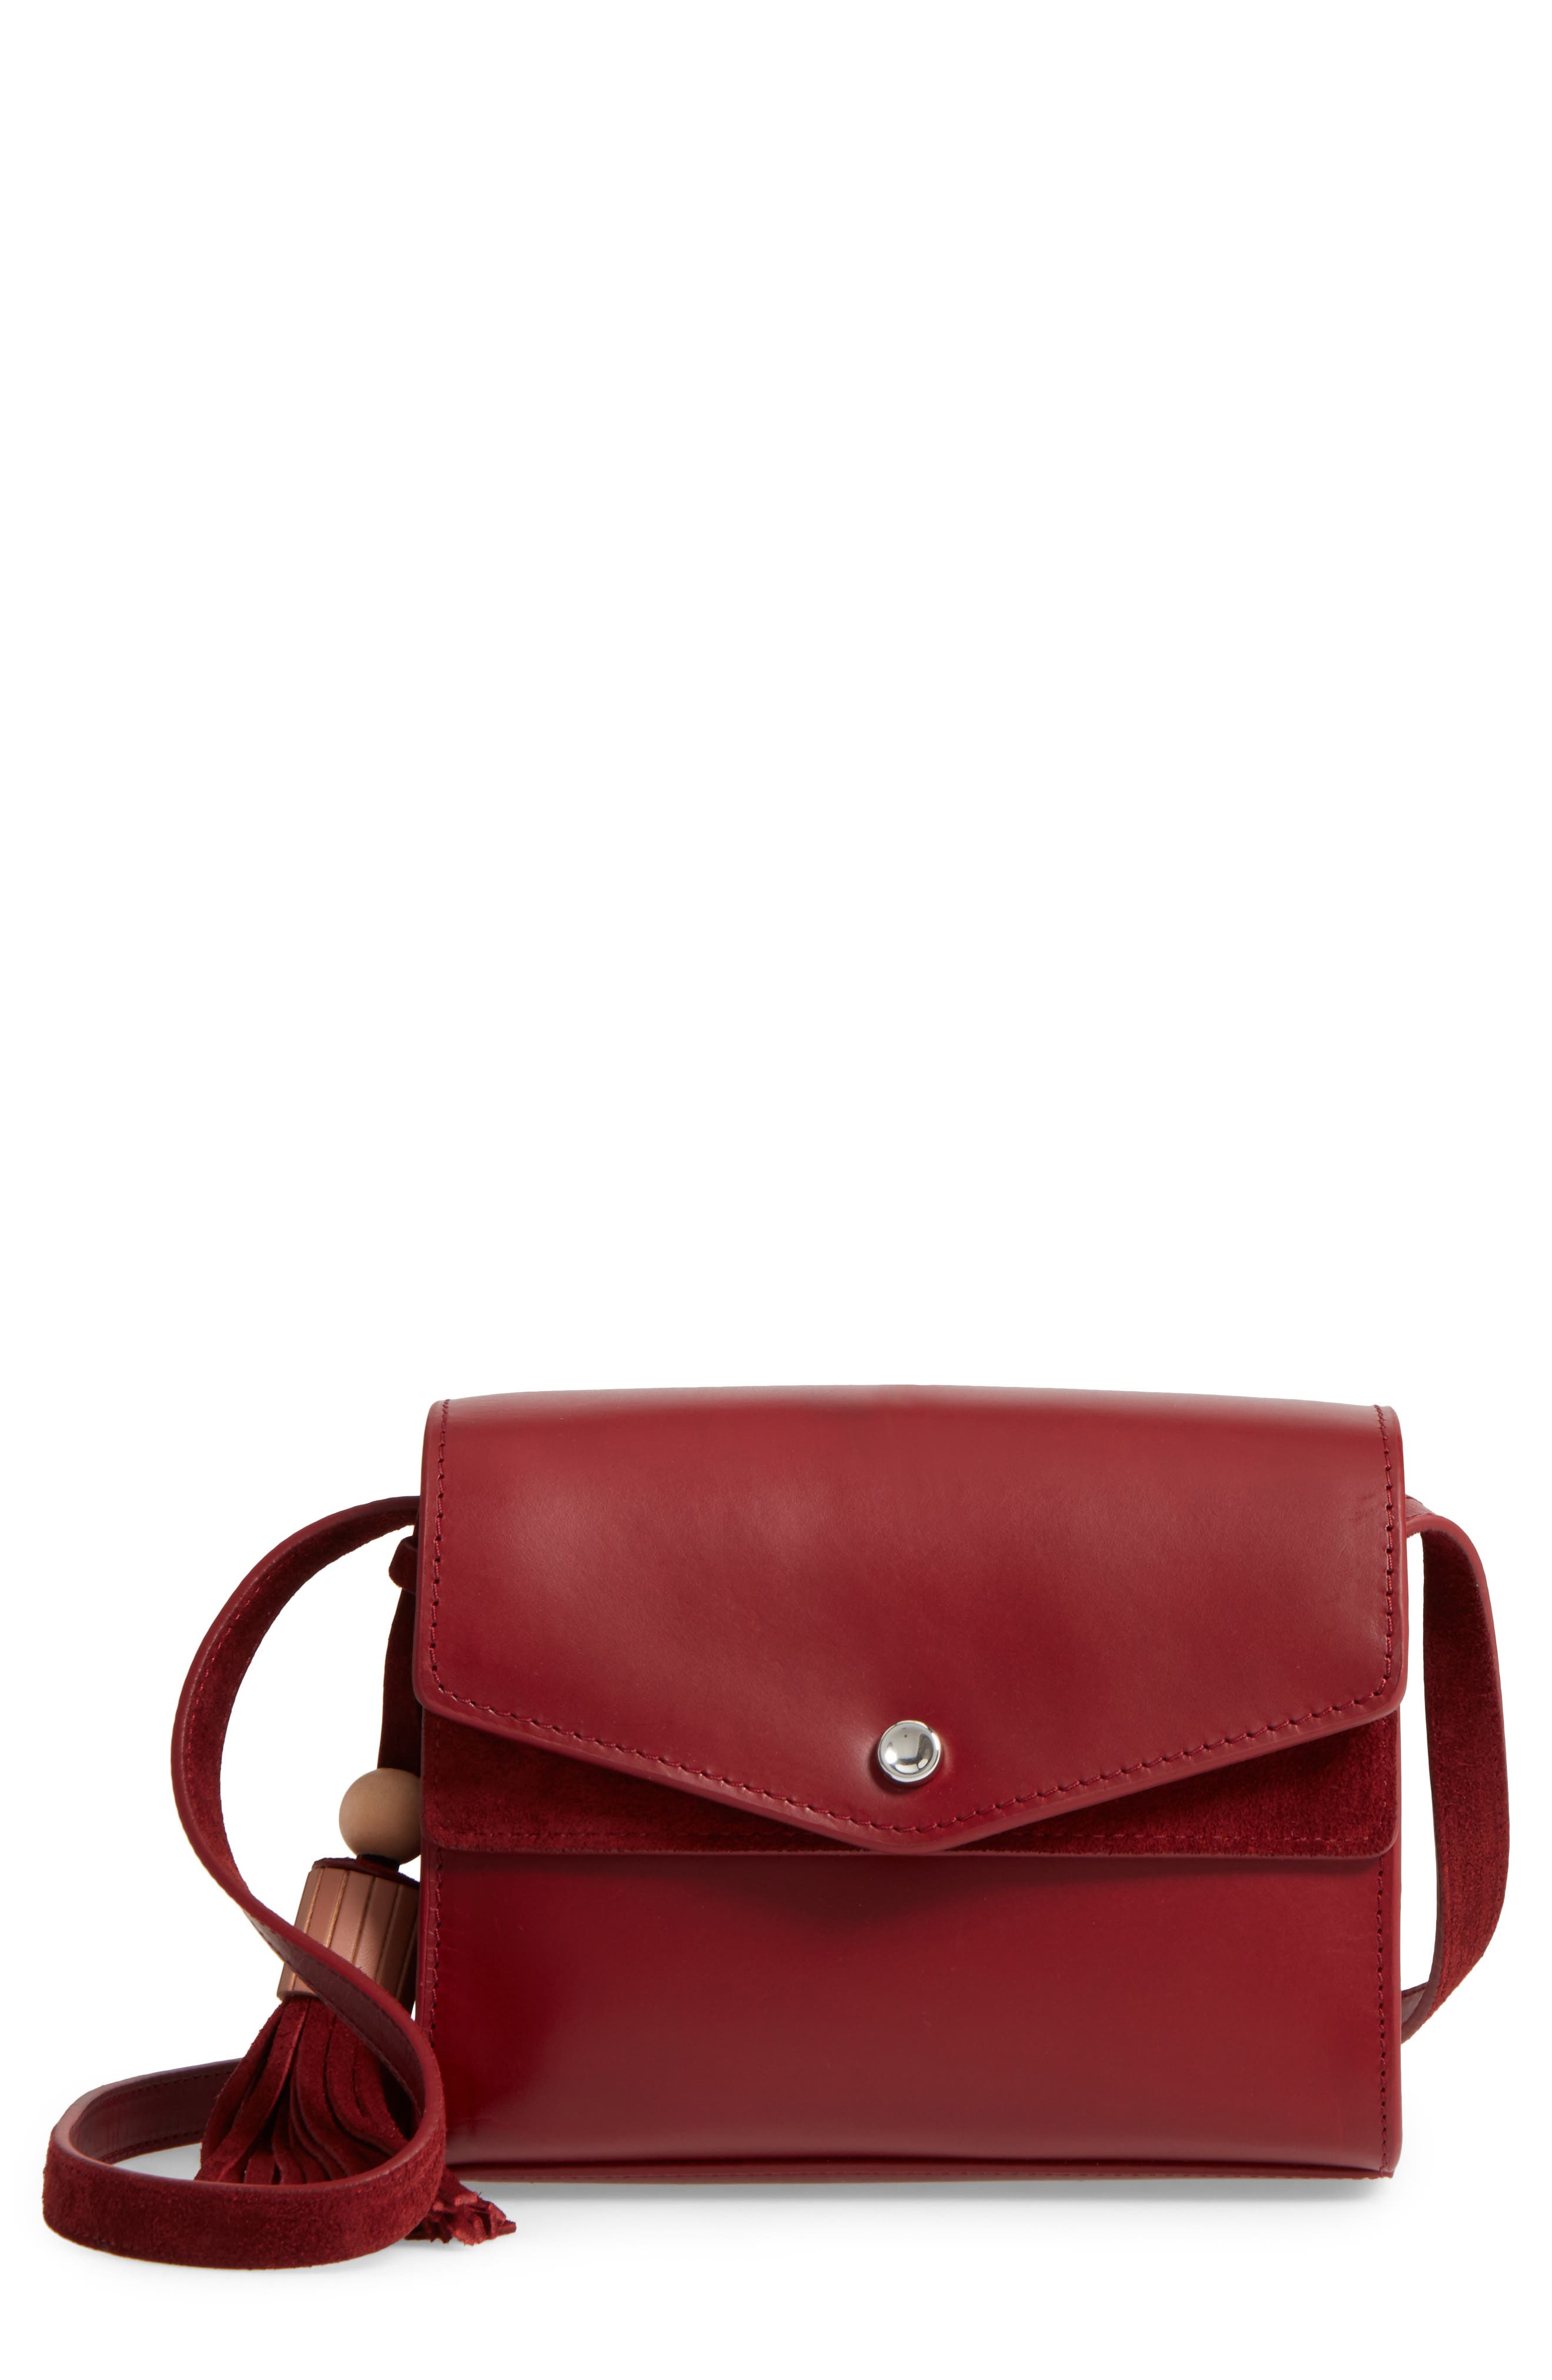 Main Image - Elizabeth and James Eloise Field Crossbody Bag